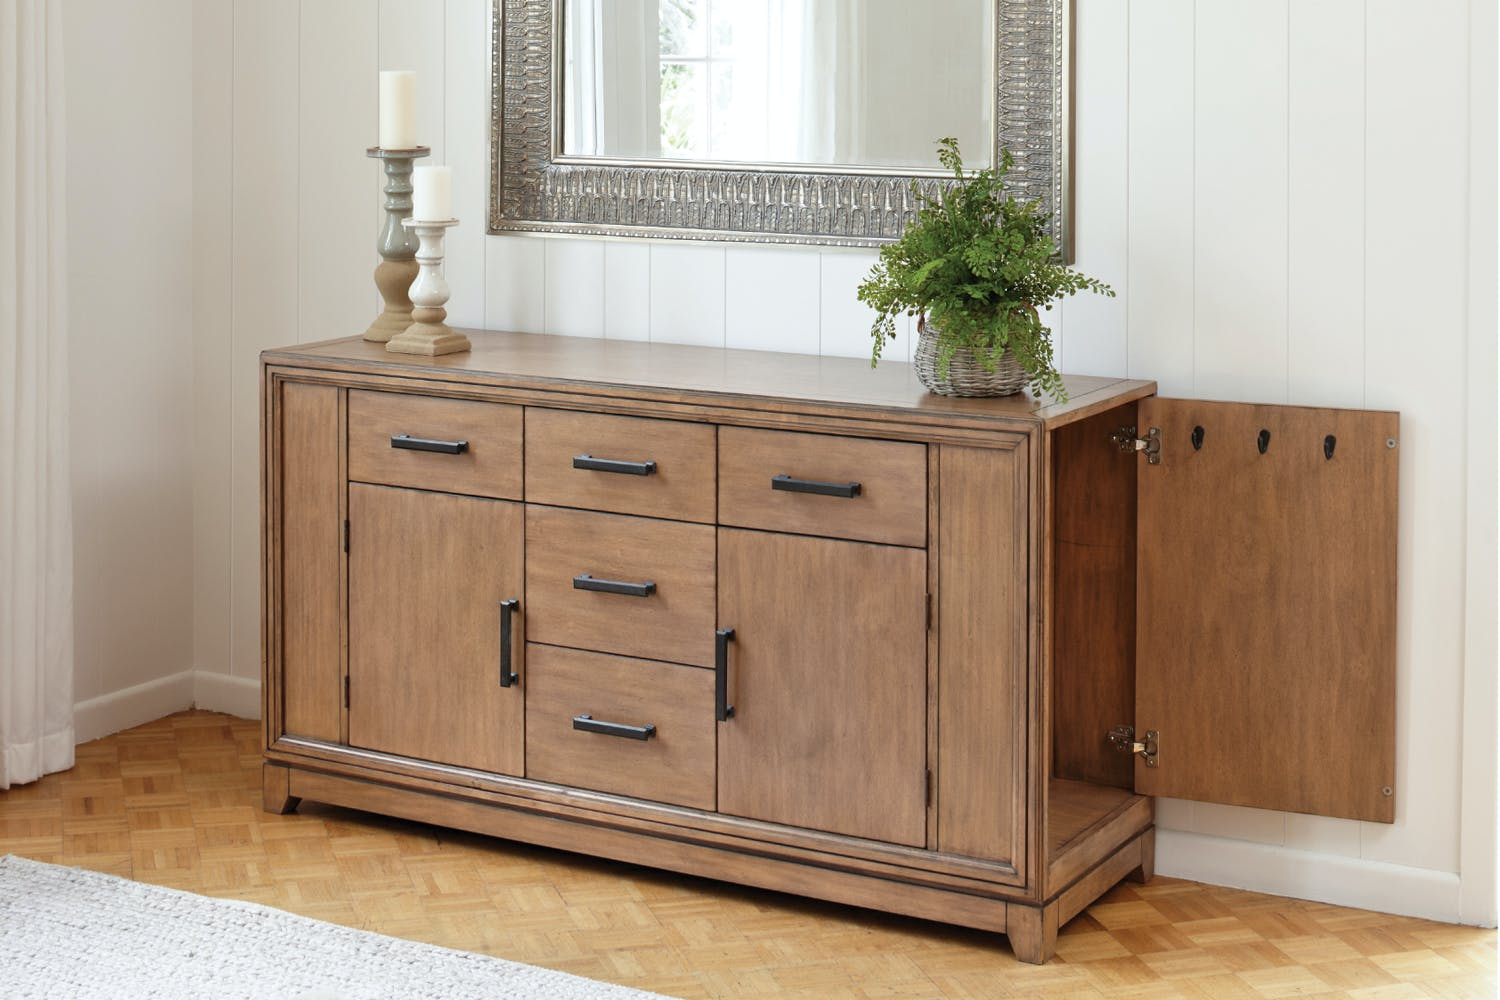 Mantra Lowboy by Insato Furniture